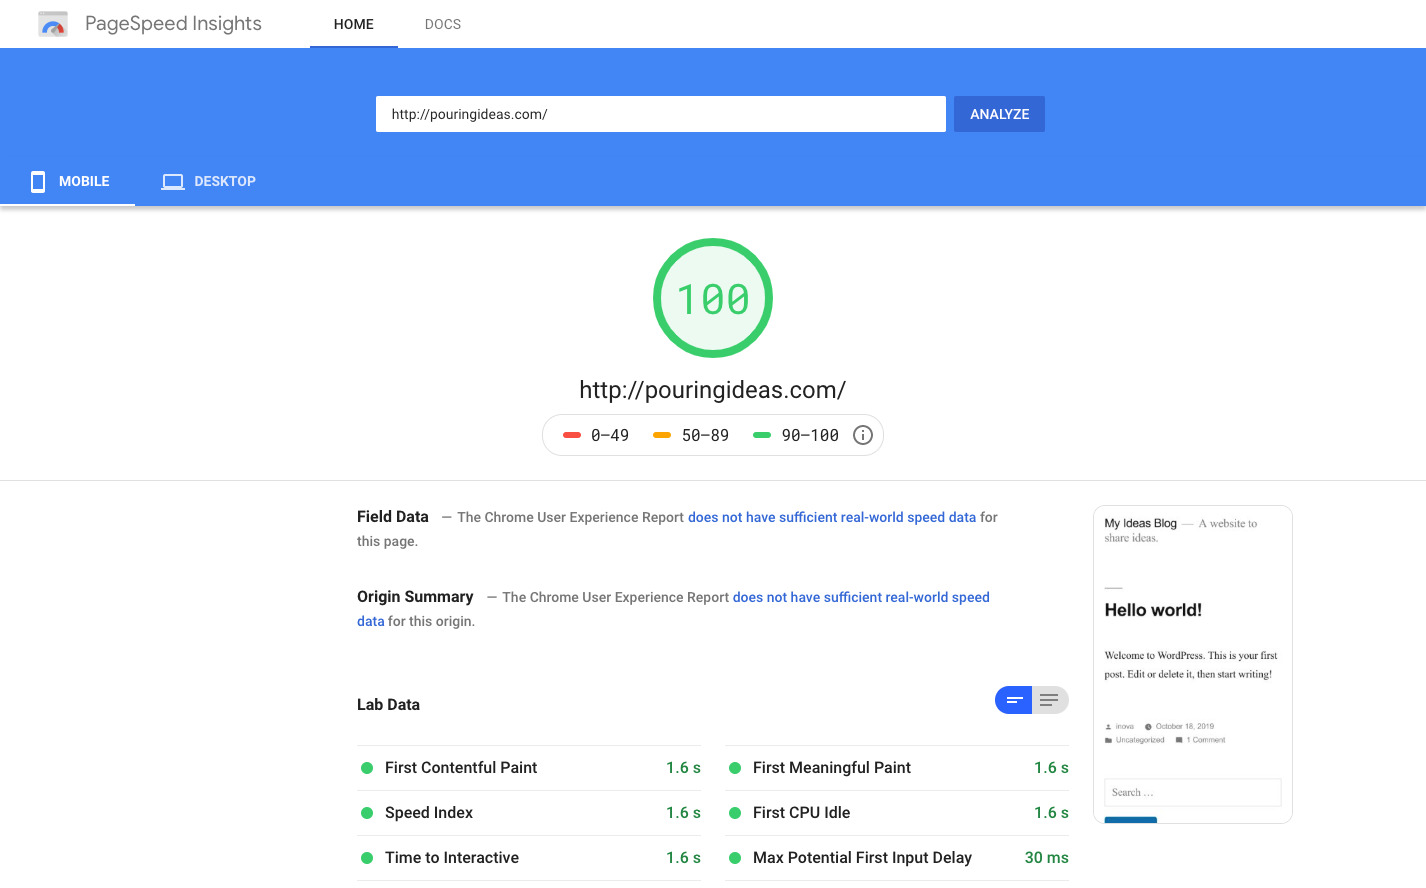 pagespeed insights SEO tool.